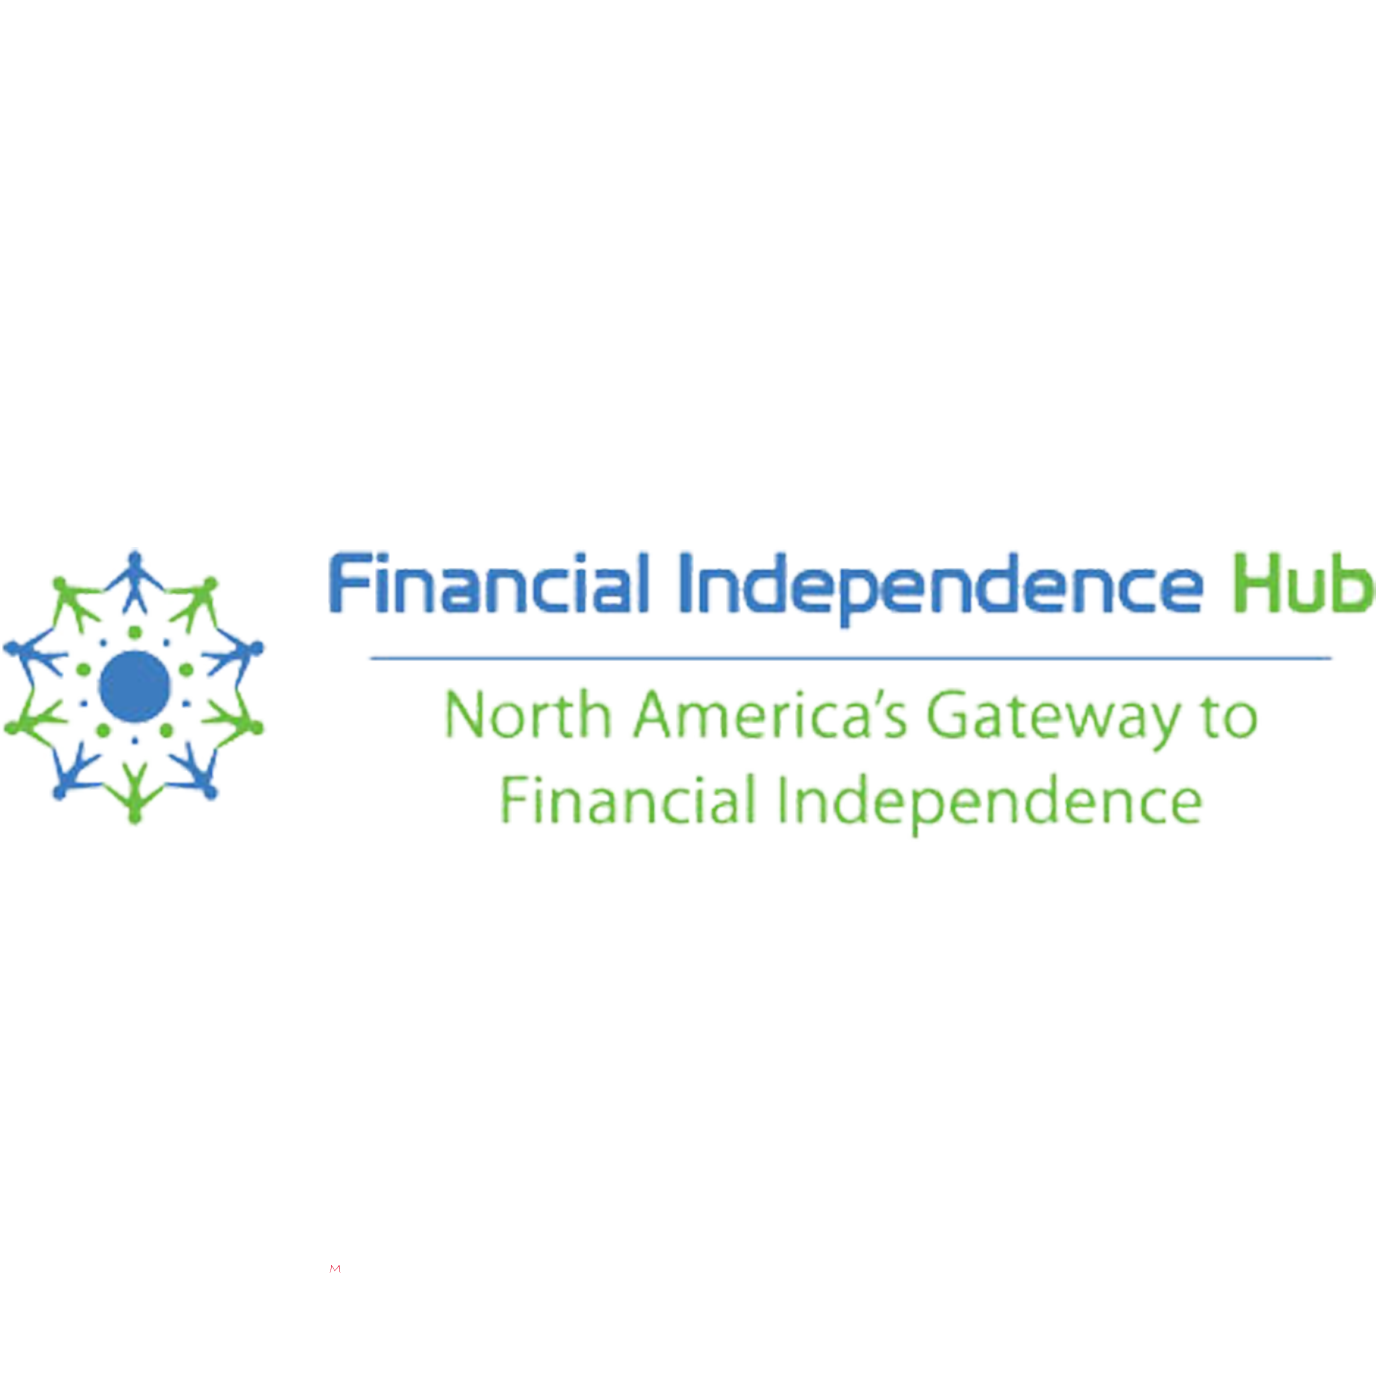 The Financial Independence Hub